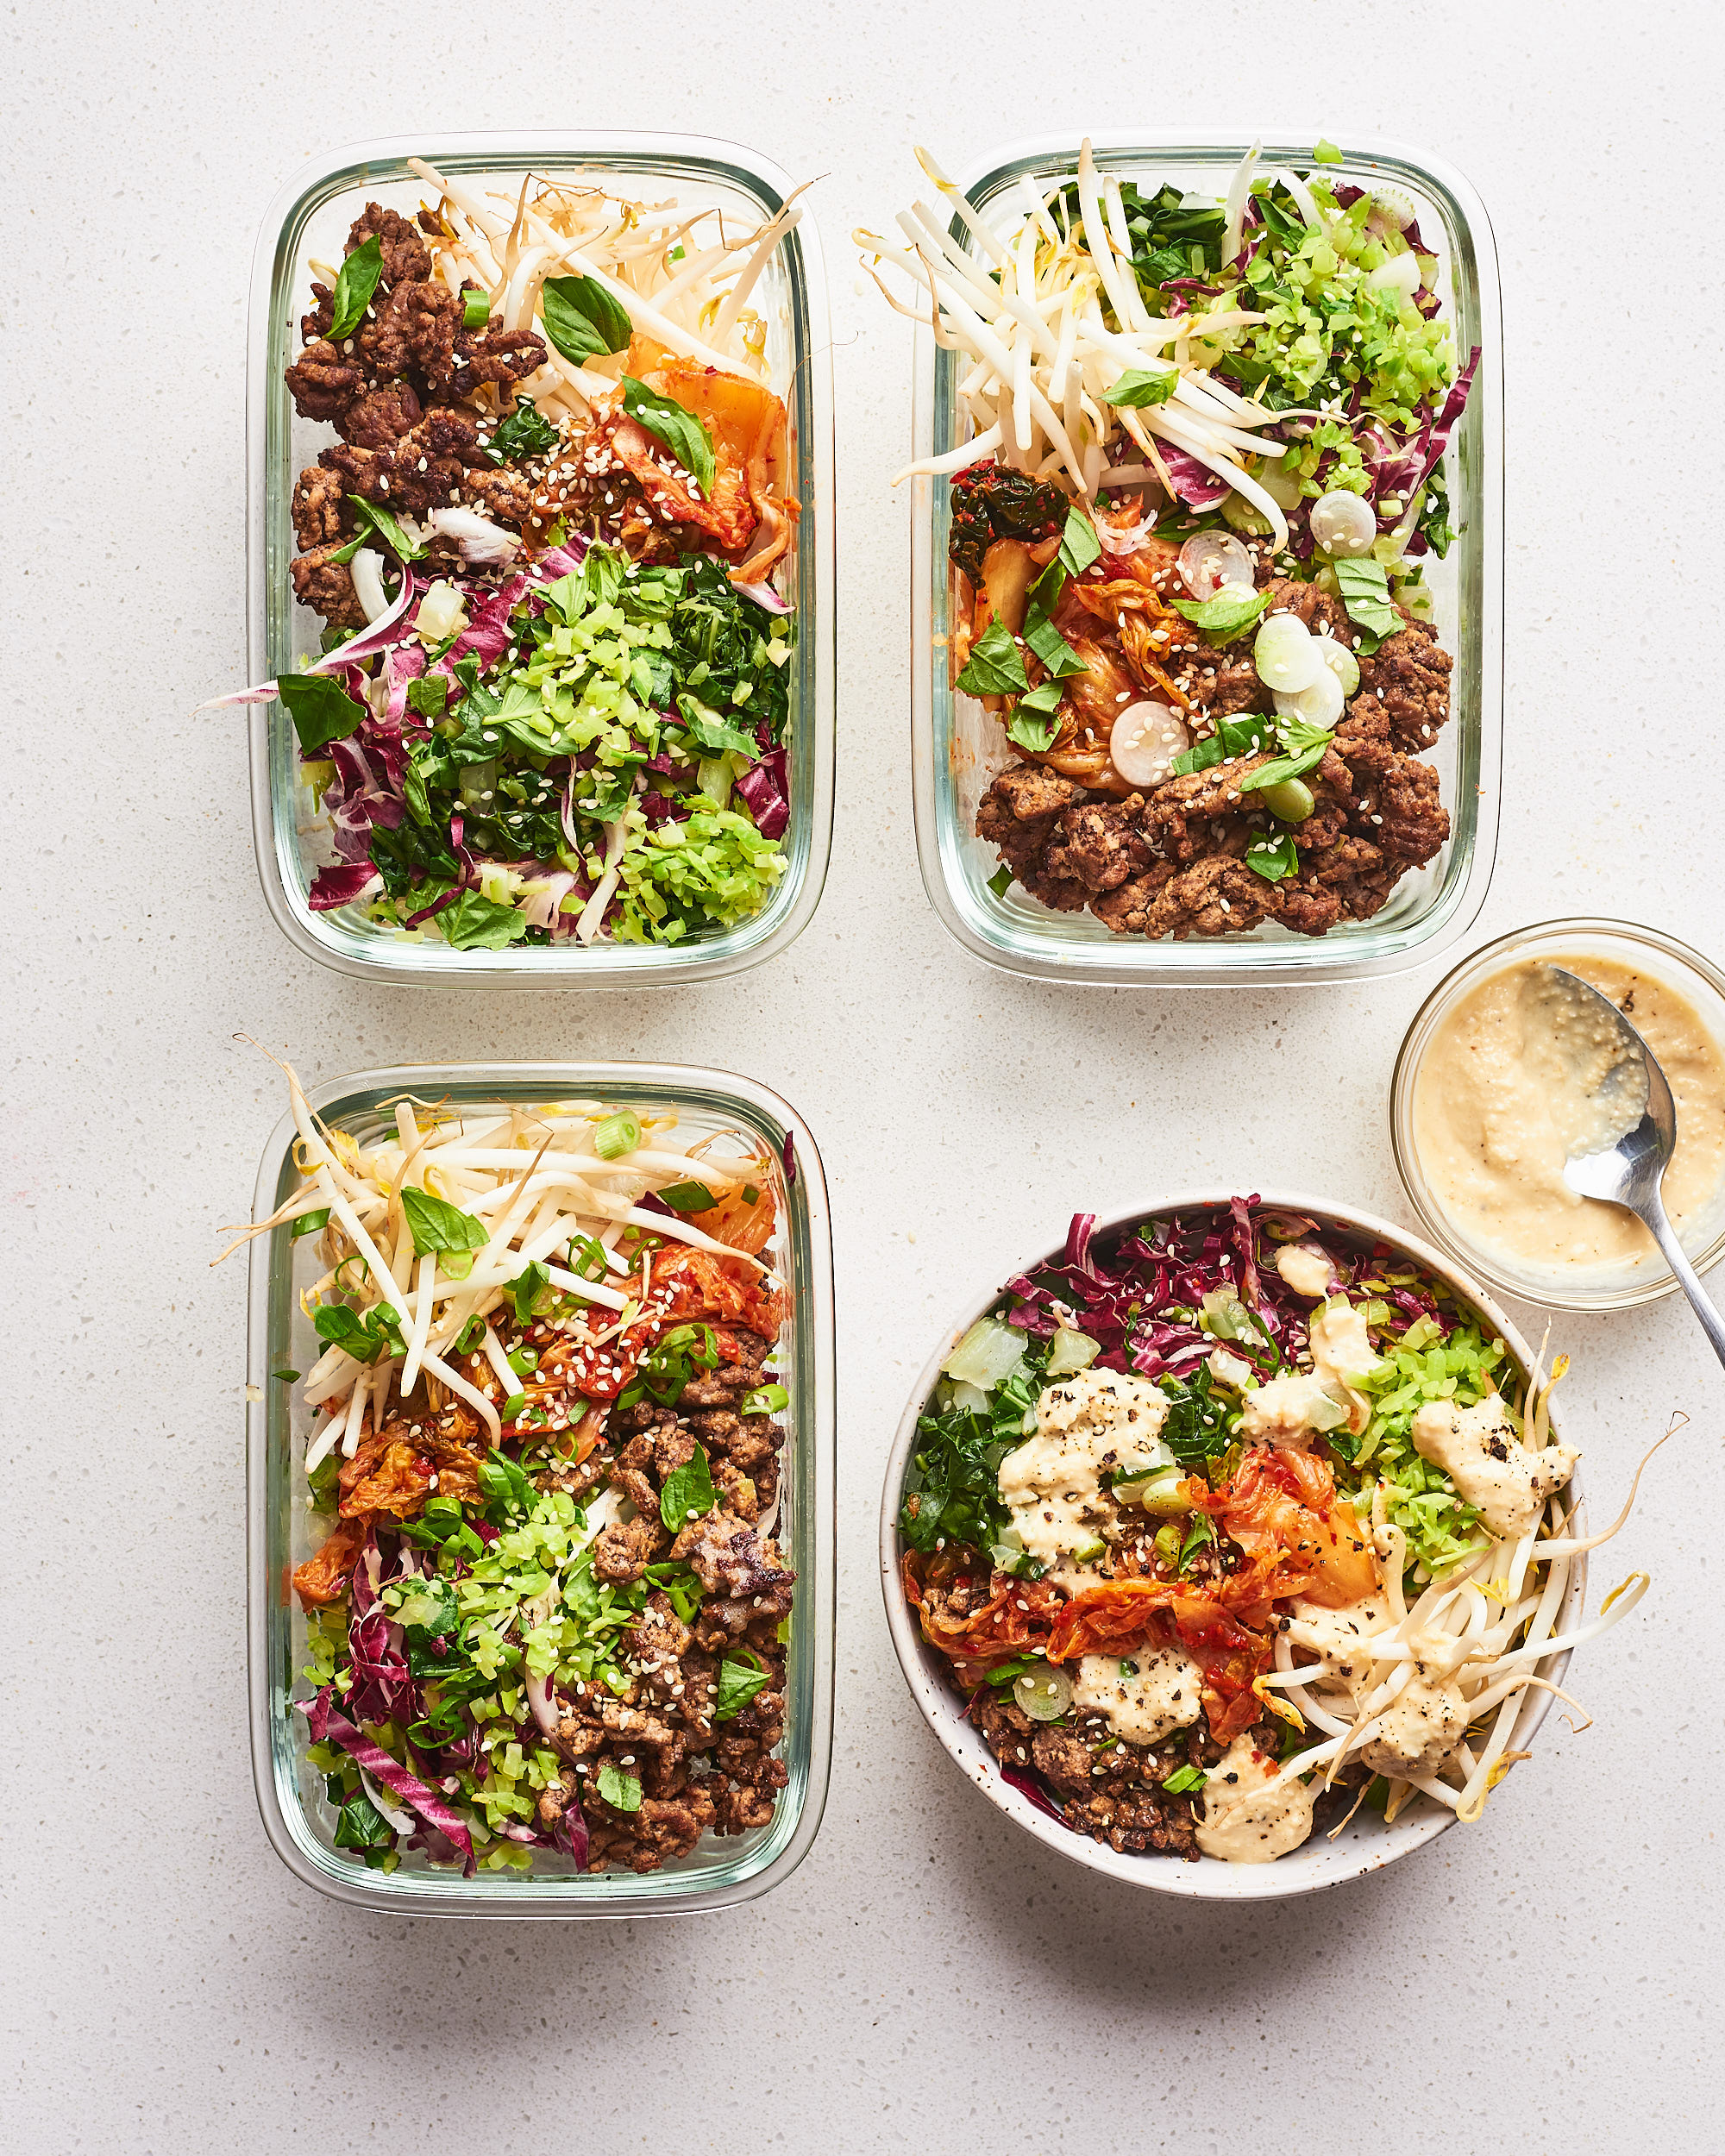 10 Ways to Cook Ground Beef for Meal Prep | Kitchn